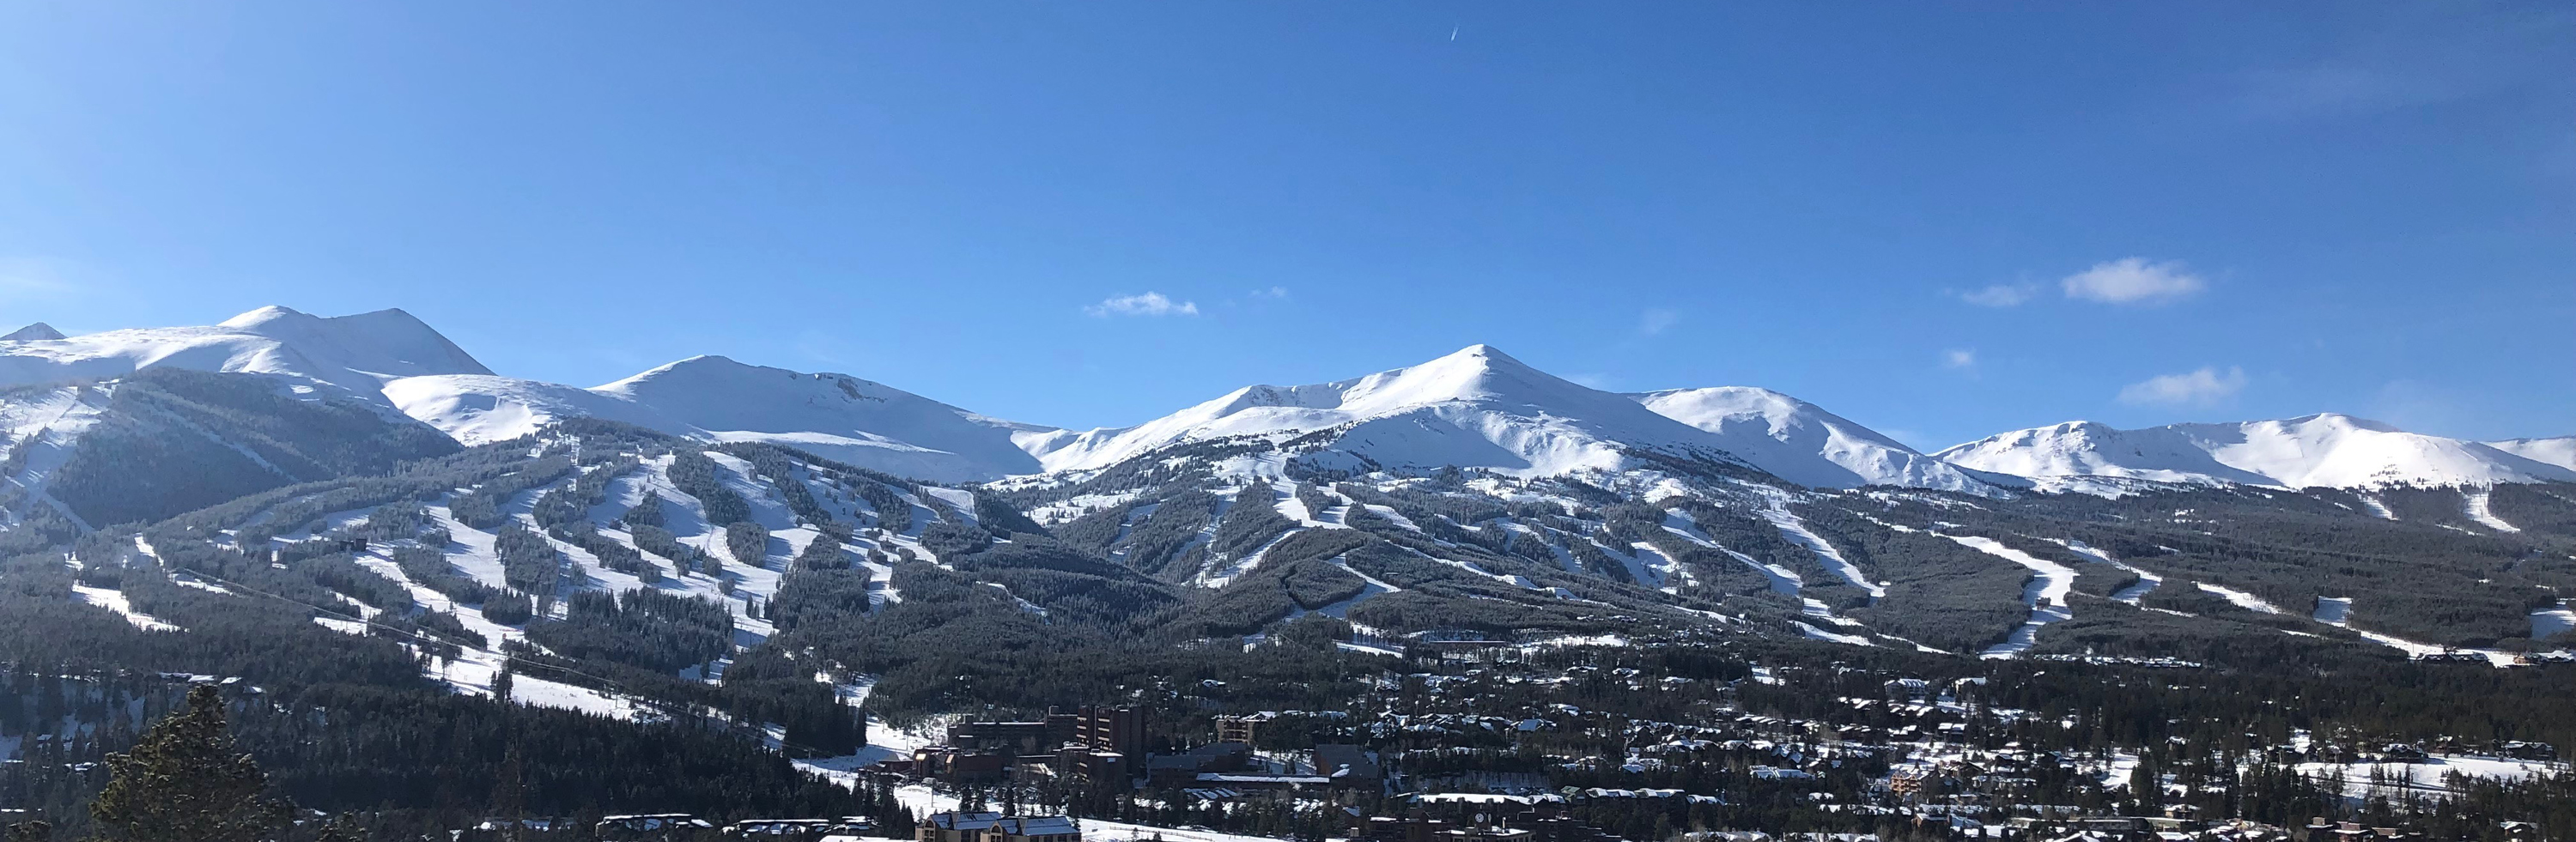 View of Breckenridge Ski Resort